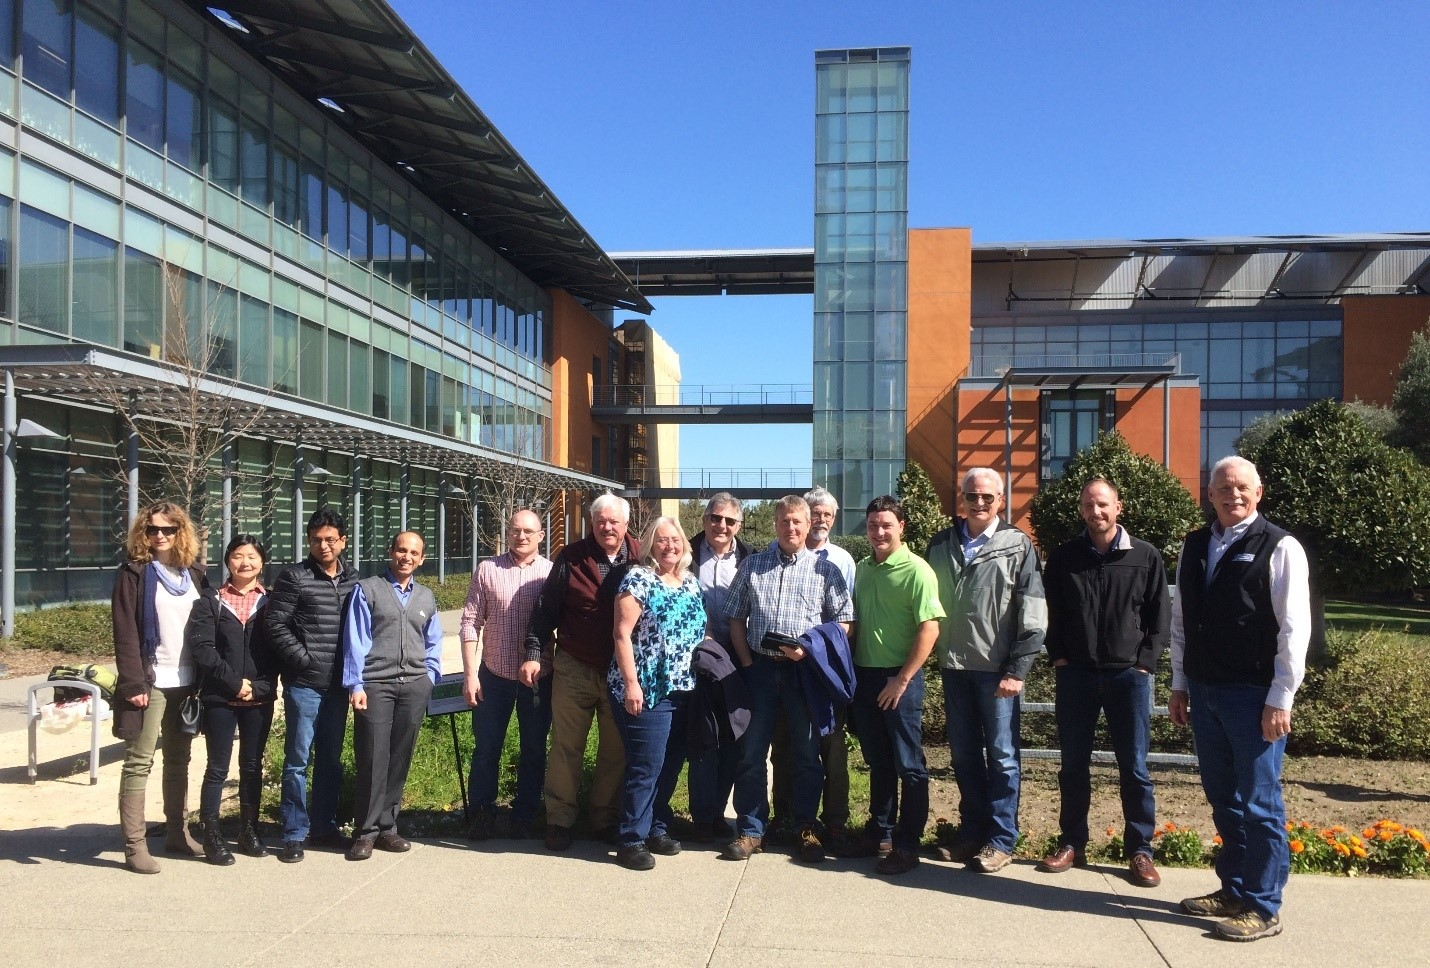 Picture 1: The tour group and Dr. Nitin Nitin (fourth from left) in front of the Robert Mondavi Institute for Wine and Food Sciences in Davis, CA on March 2, 2017.